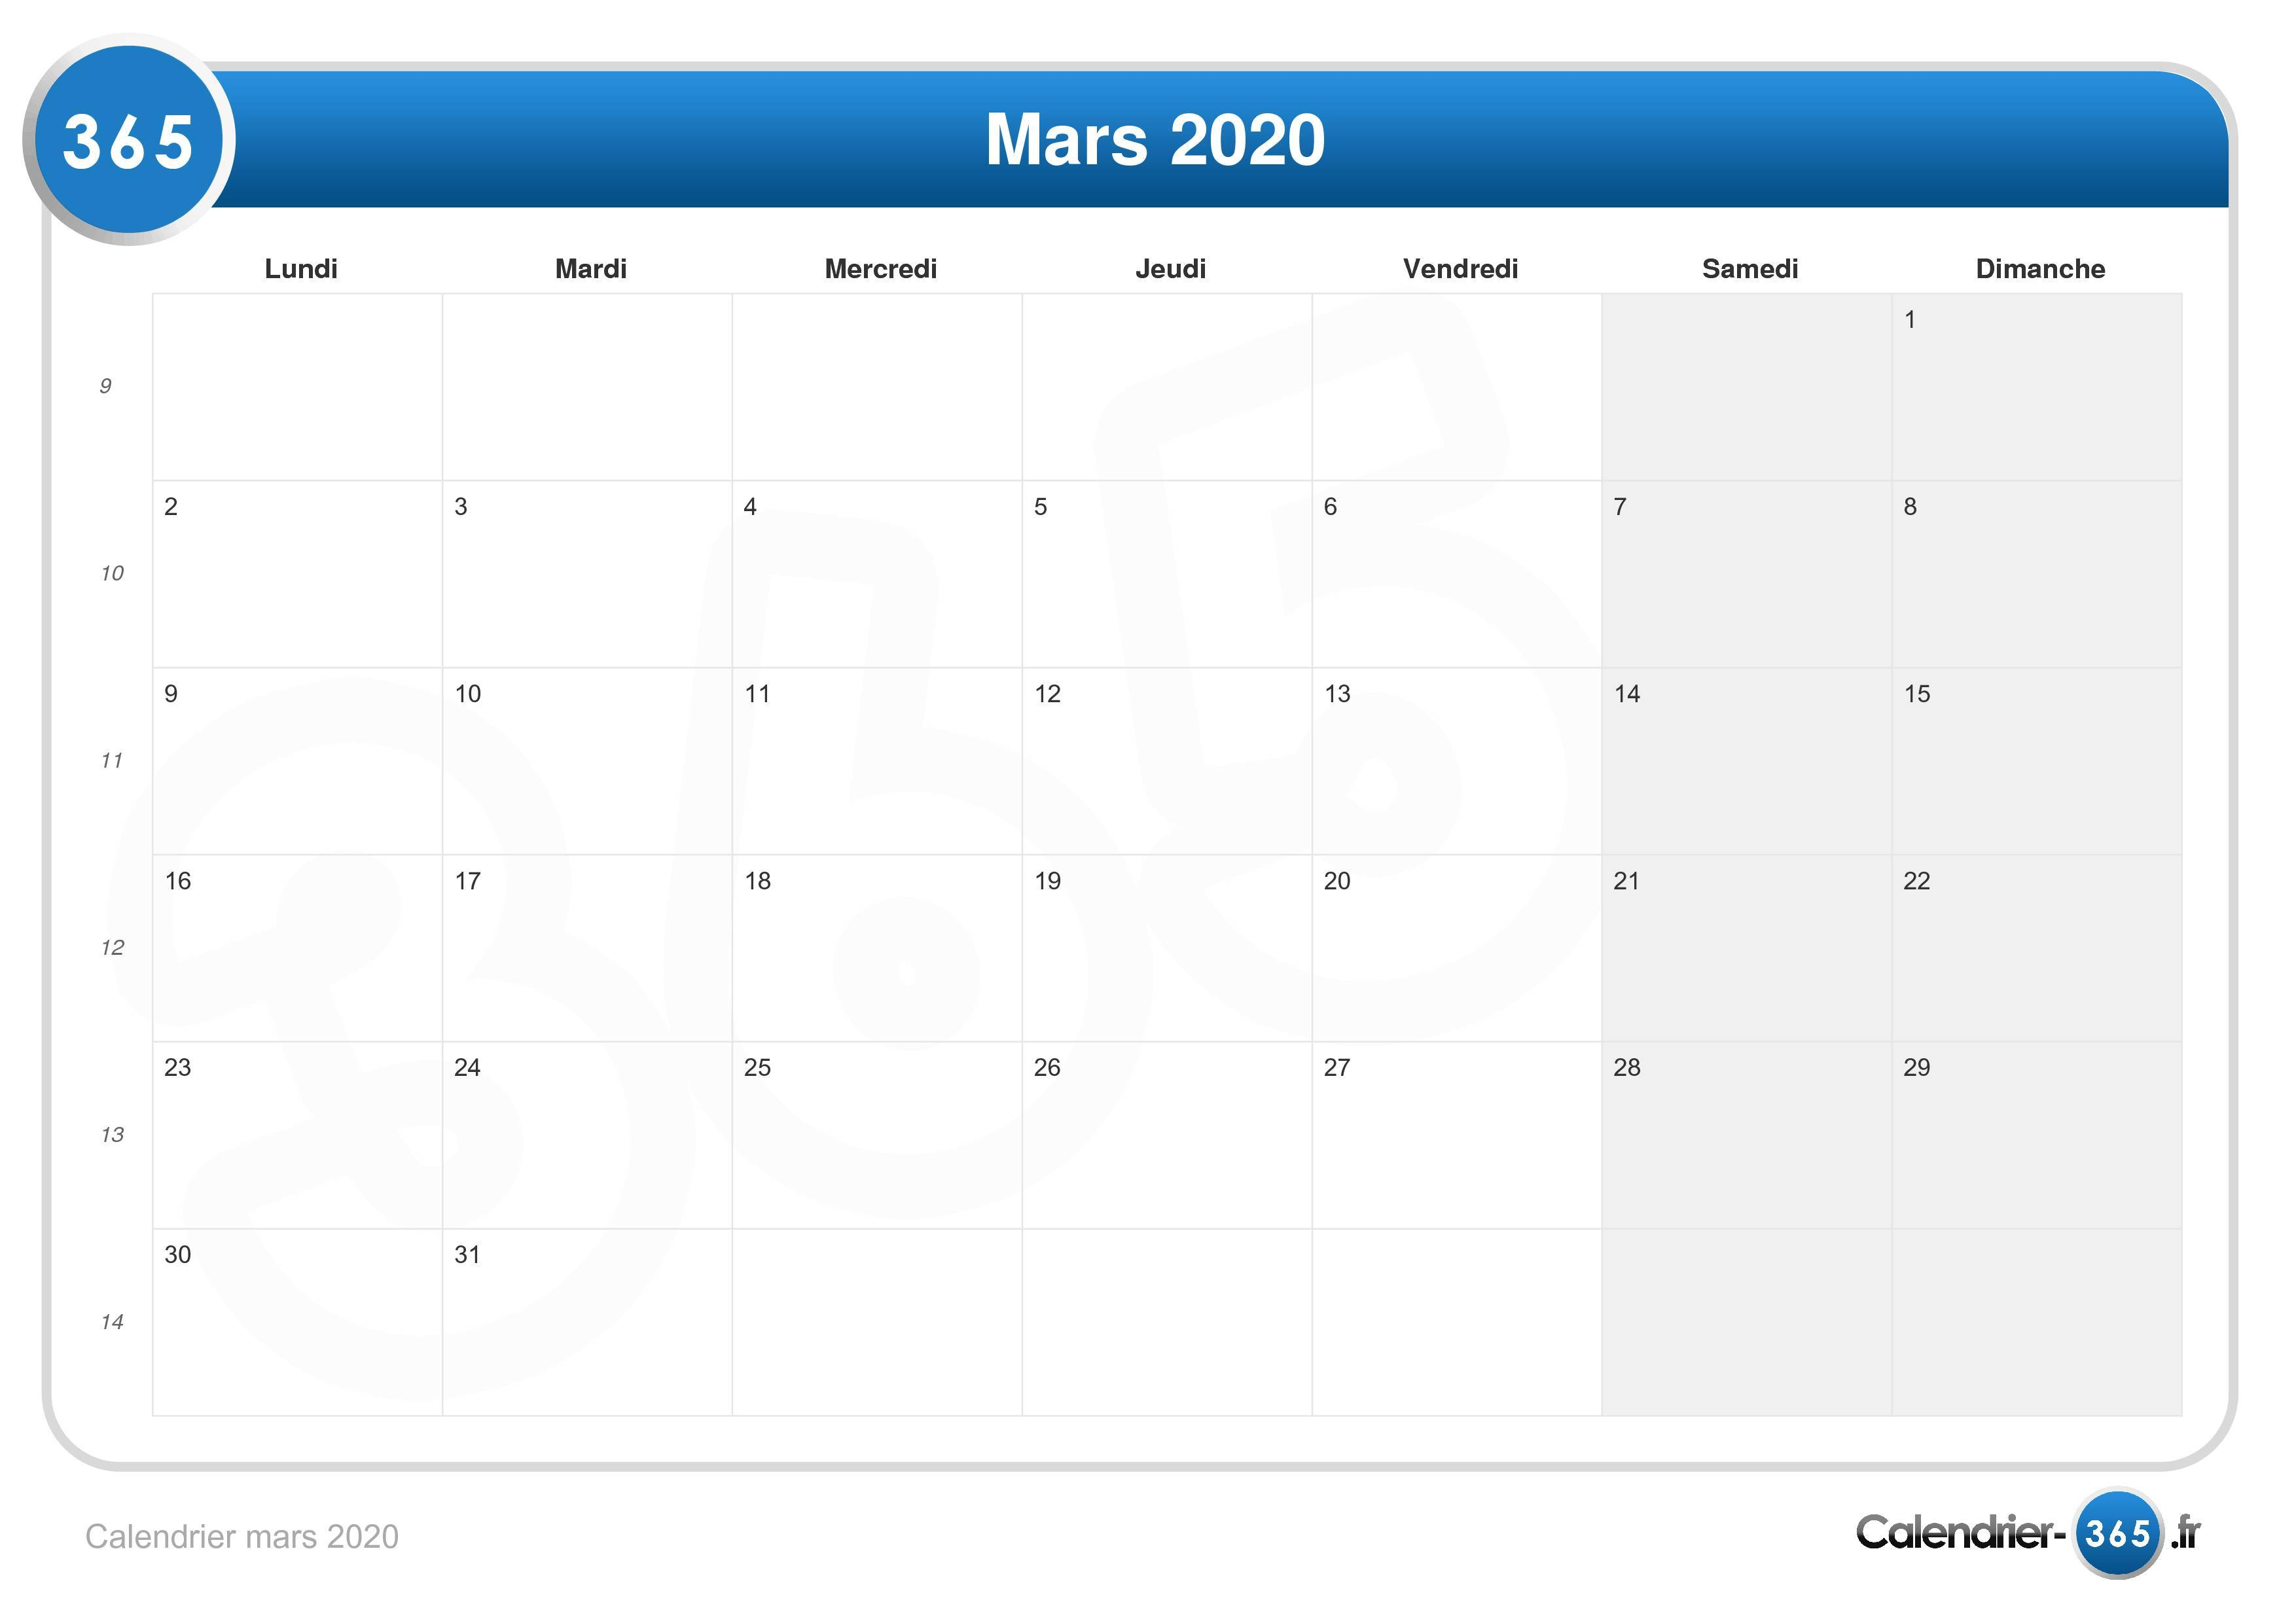 Calendrier Mars 2020.Calendrier Mars 2020